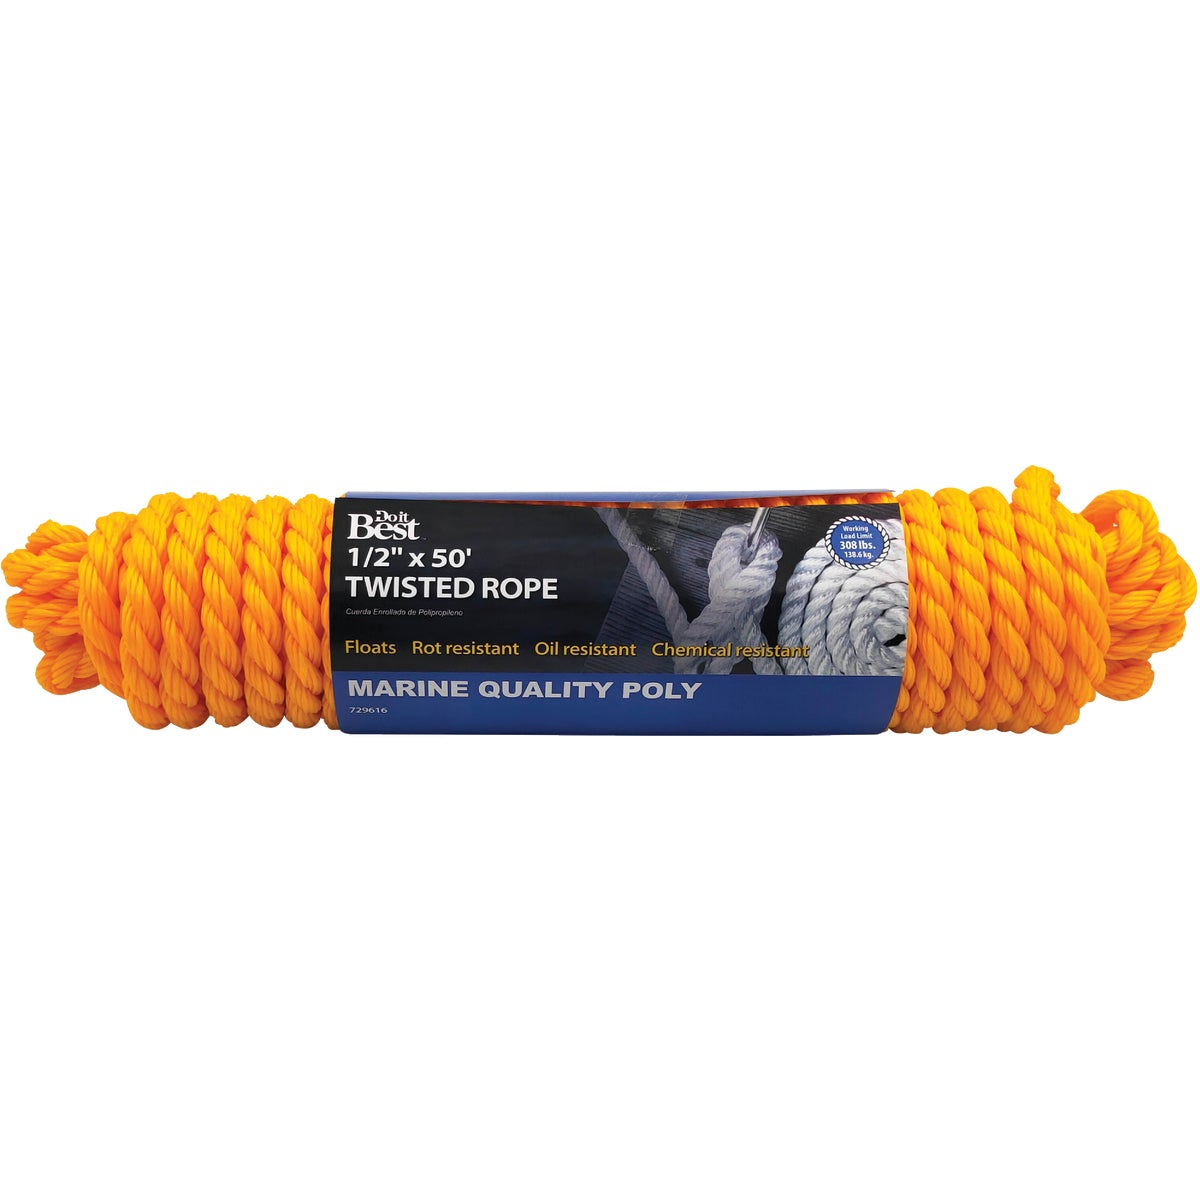 "1/2""X50' POLY TWIST ROPE - 729616 by Do it Best"